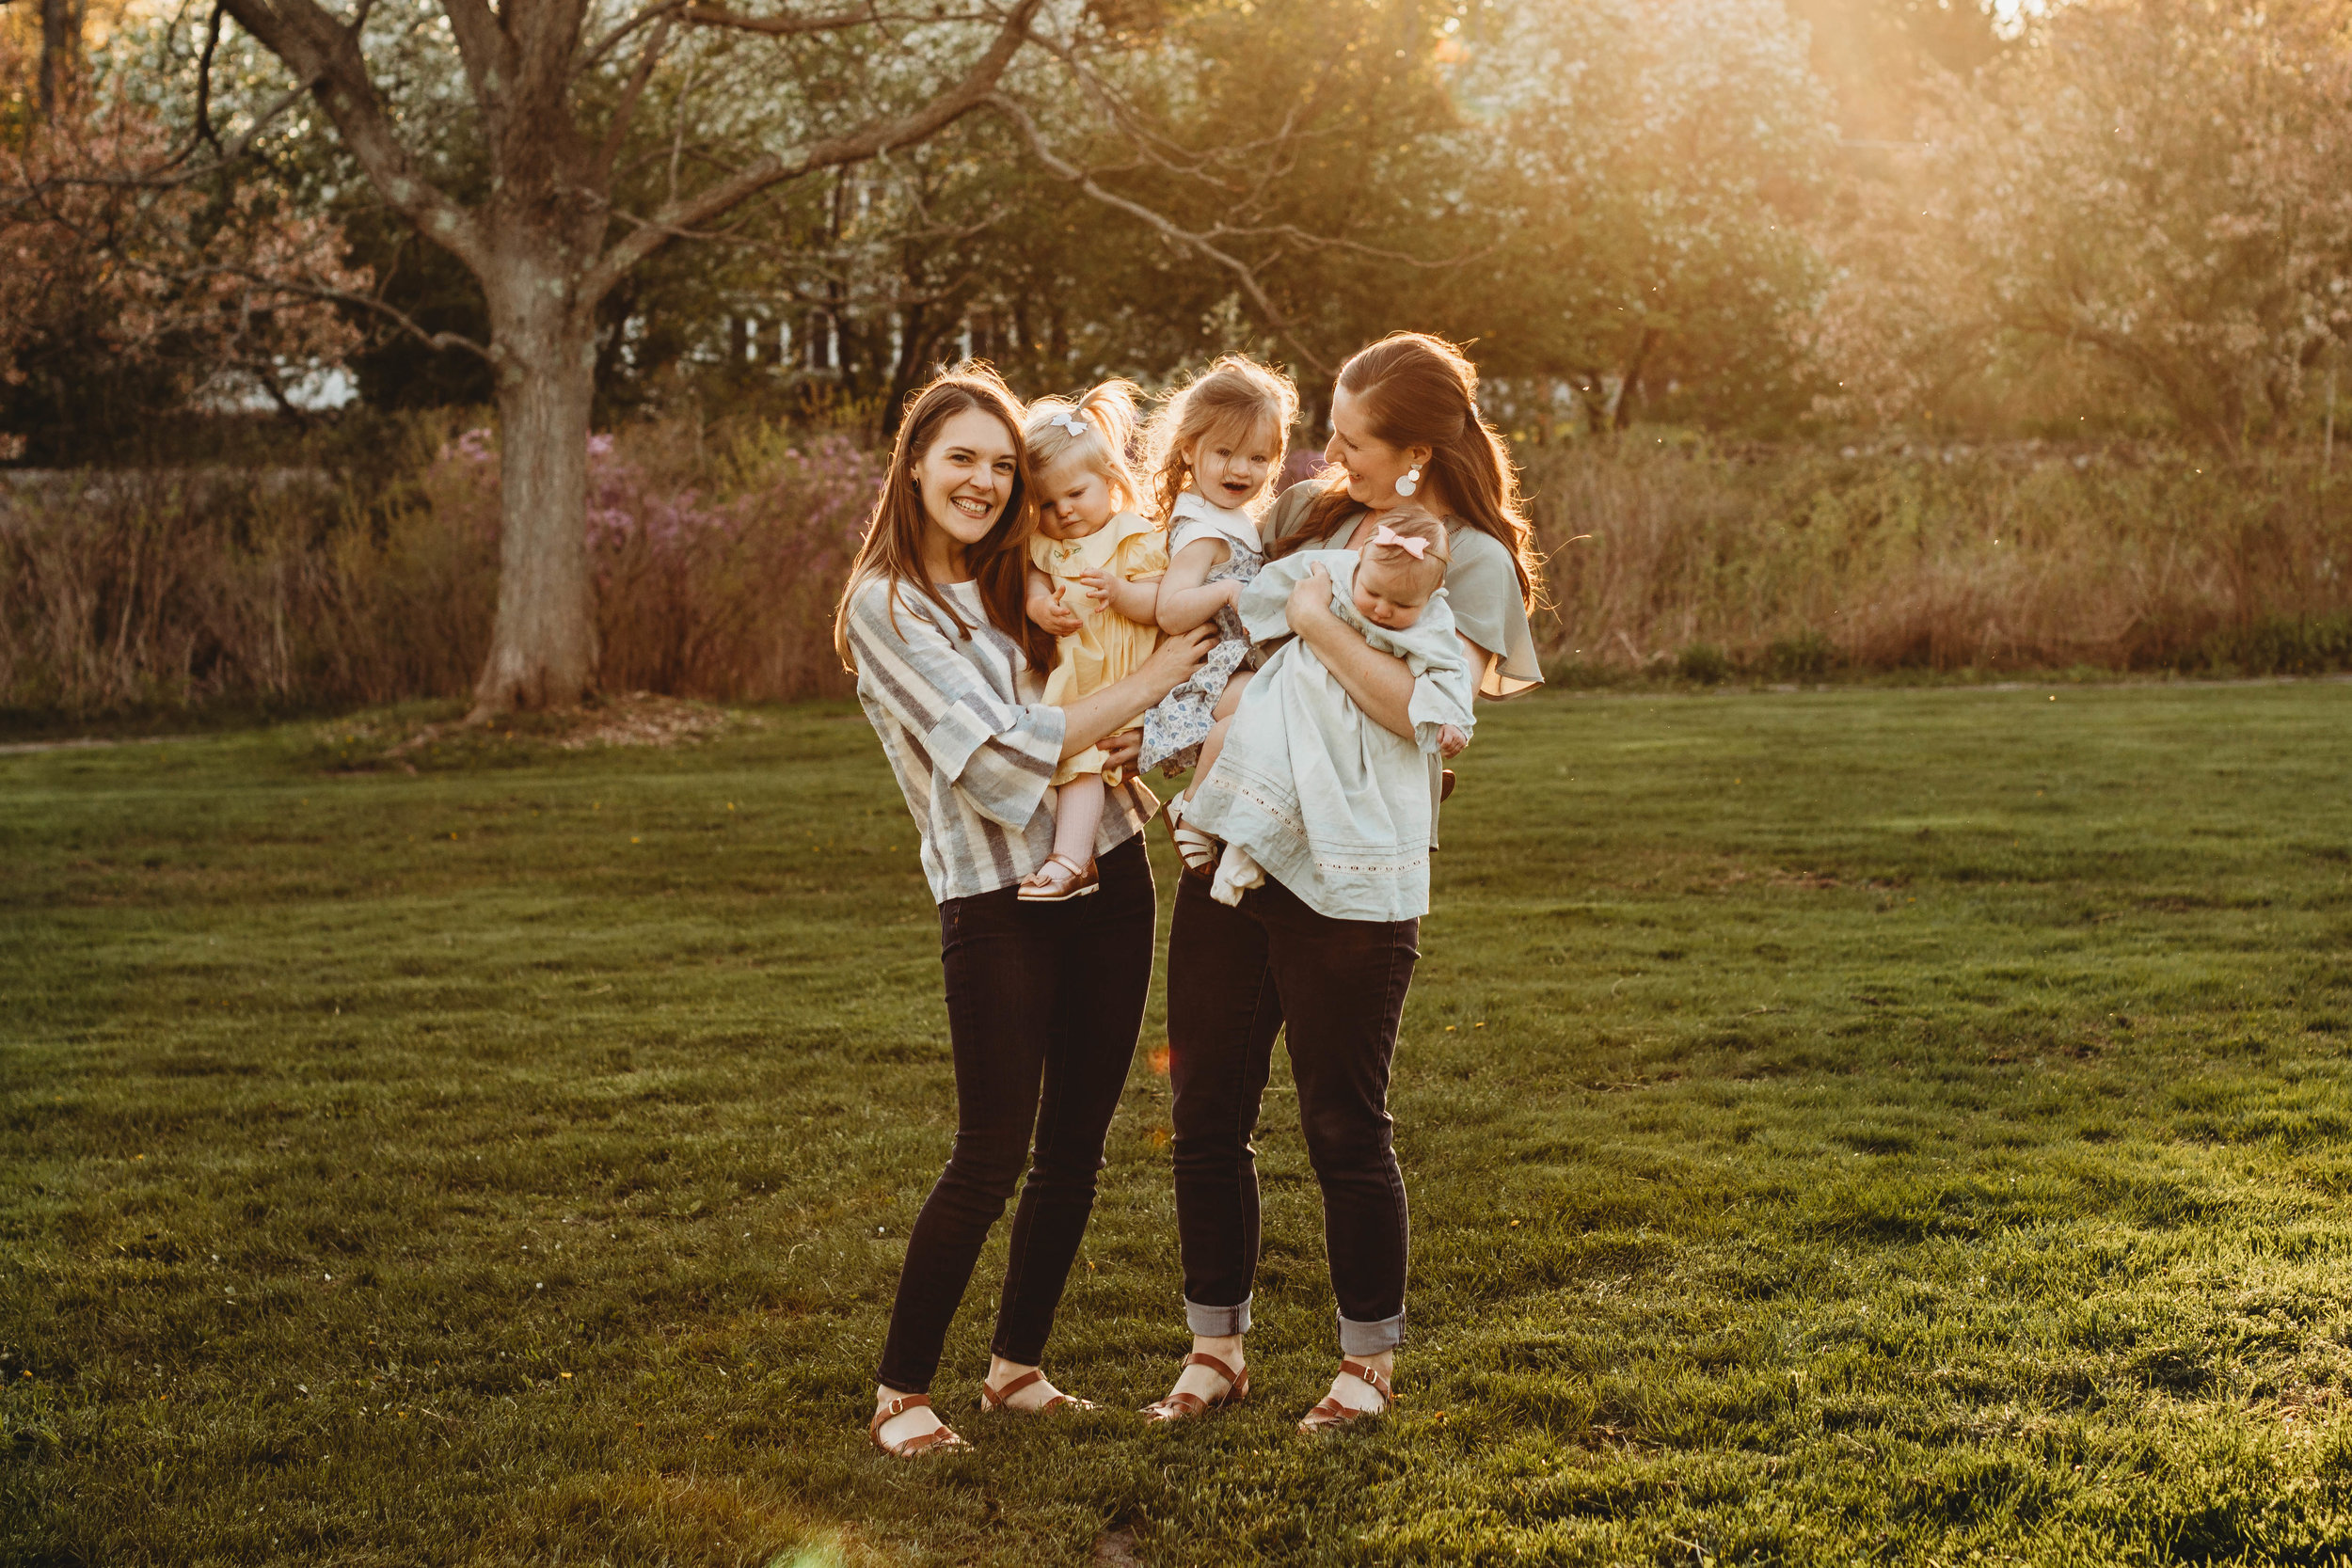 Three girl cousins and their moms at Acton Arboretum. Springtime golden hour session. Boston family portraits with Joy LeDuc.